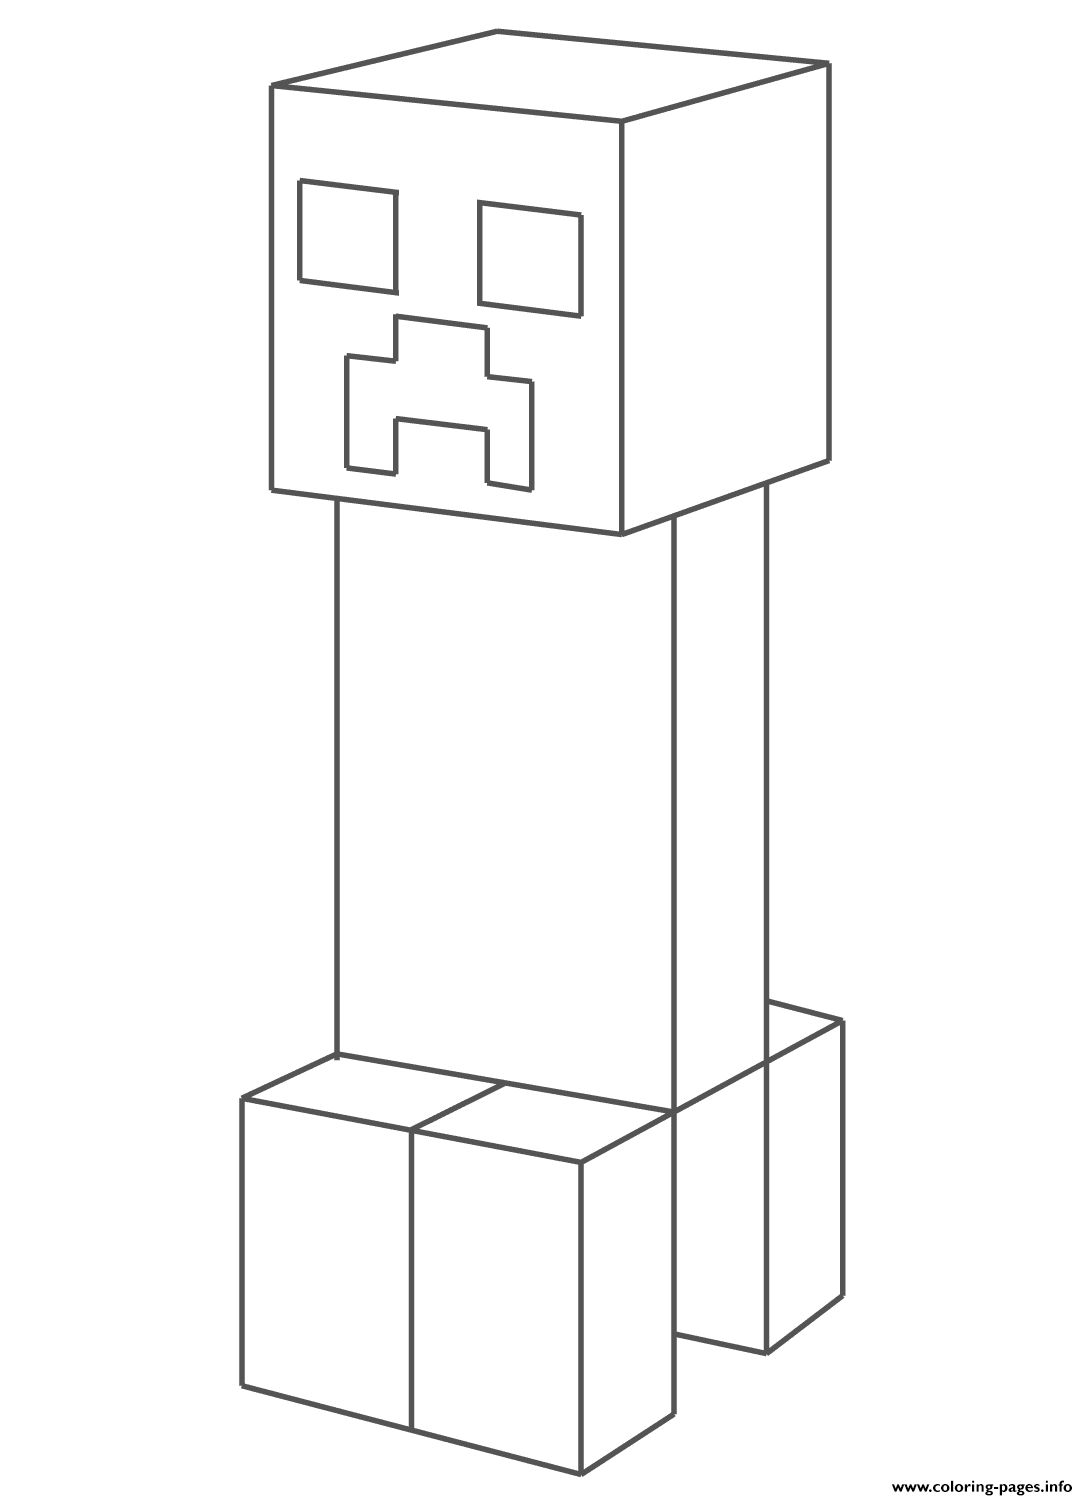 Creeper coloring pages